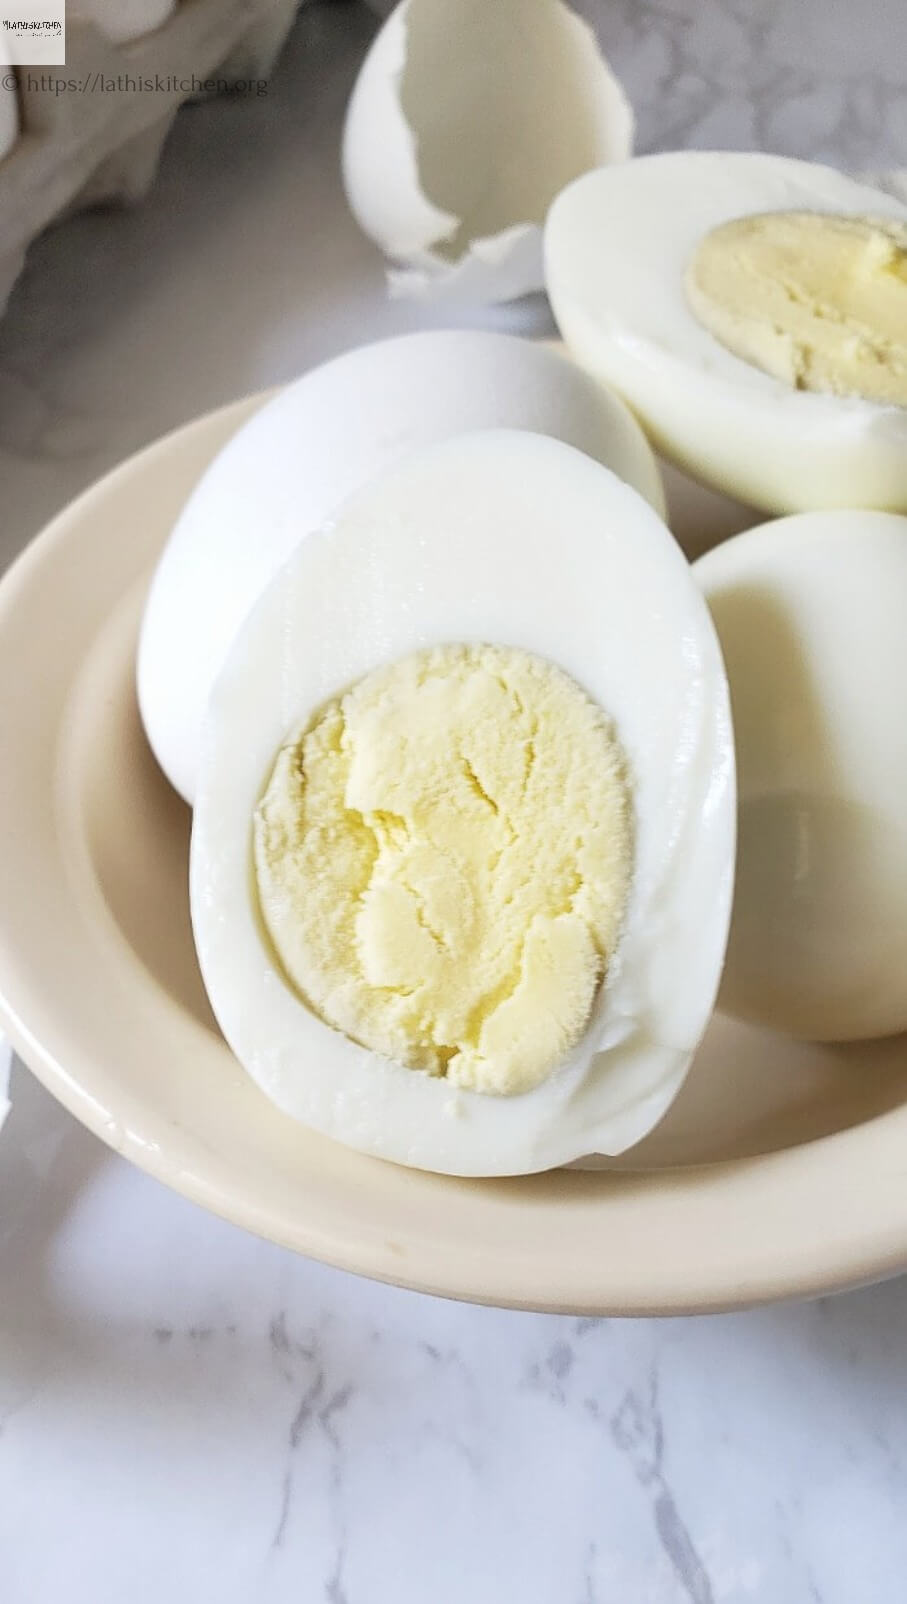 Half cut hard boiled egg.